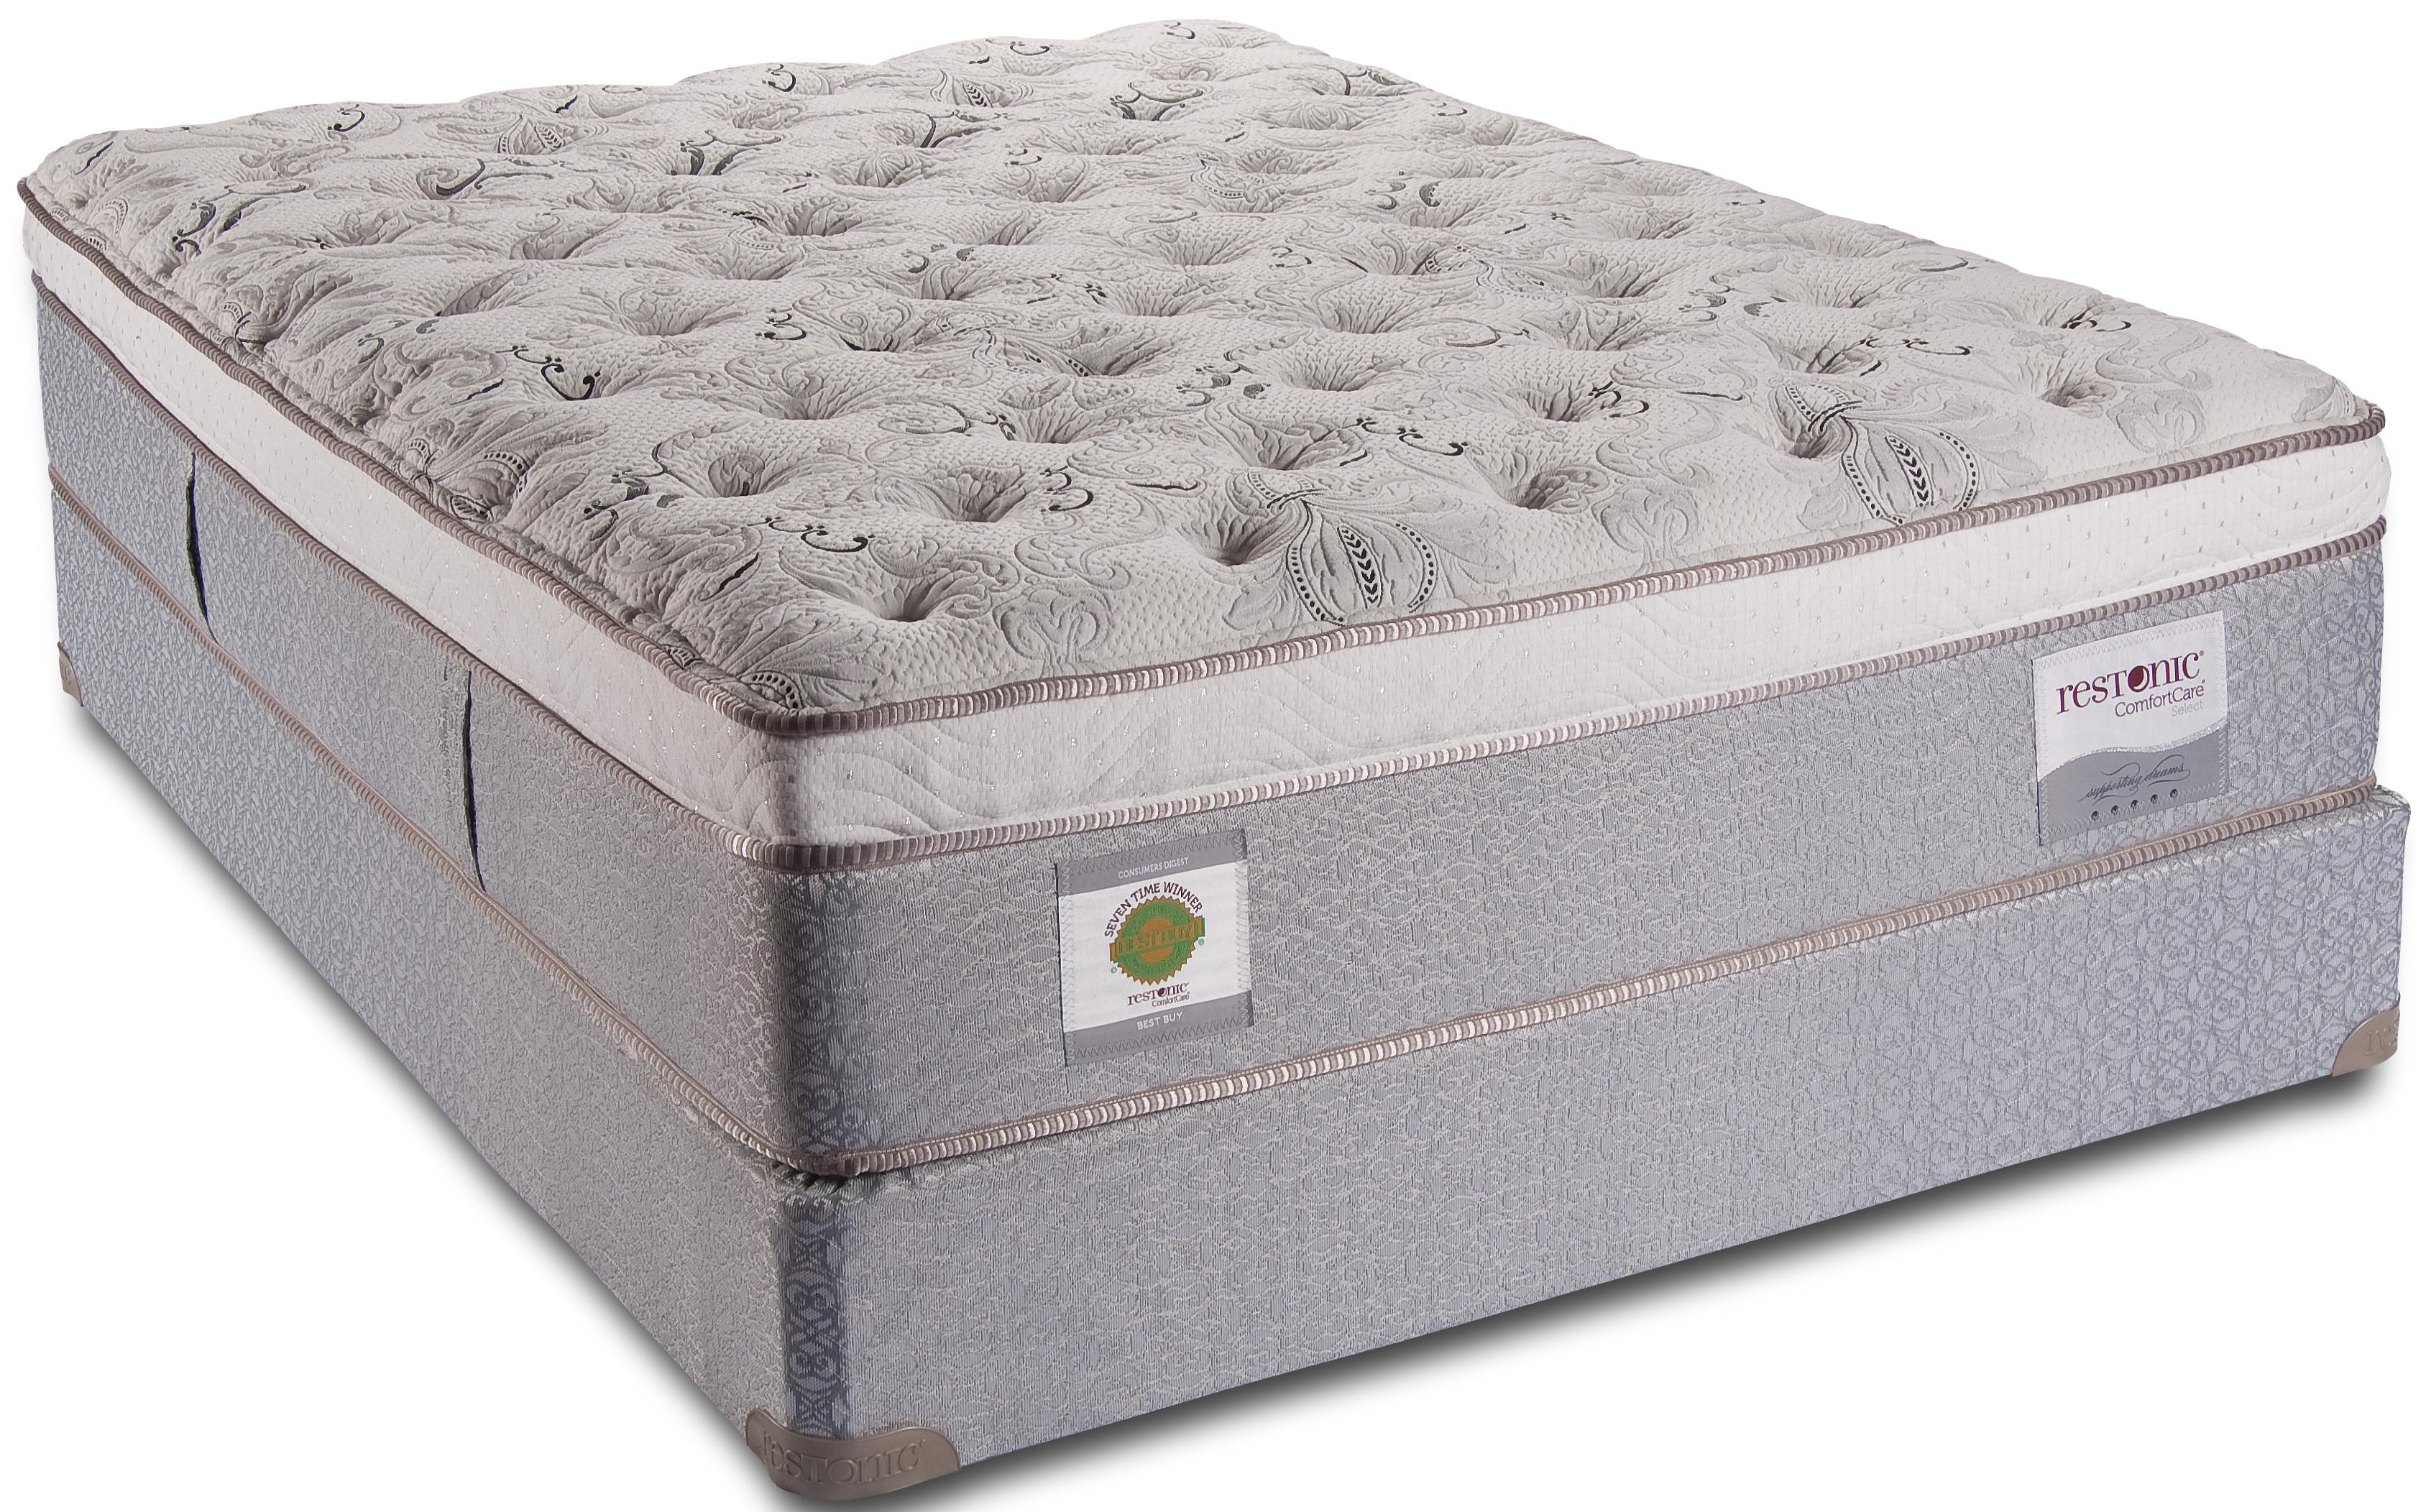 Comfortcare Select Essex King Euro Top Mattress By Restonic Wolf Furniture